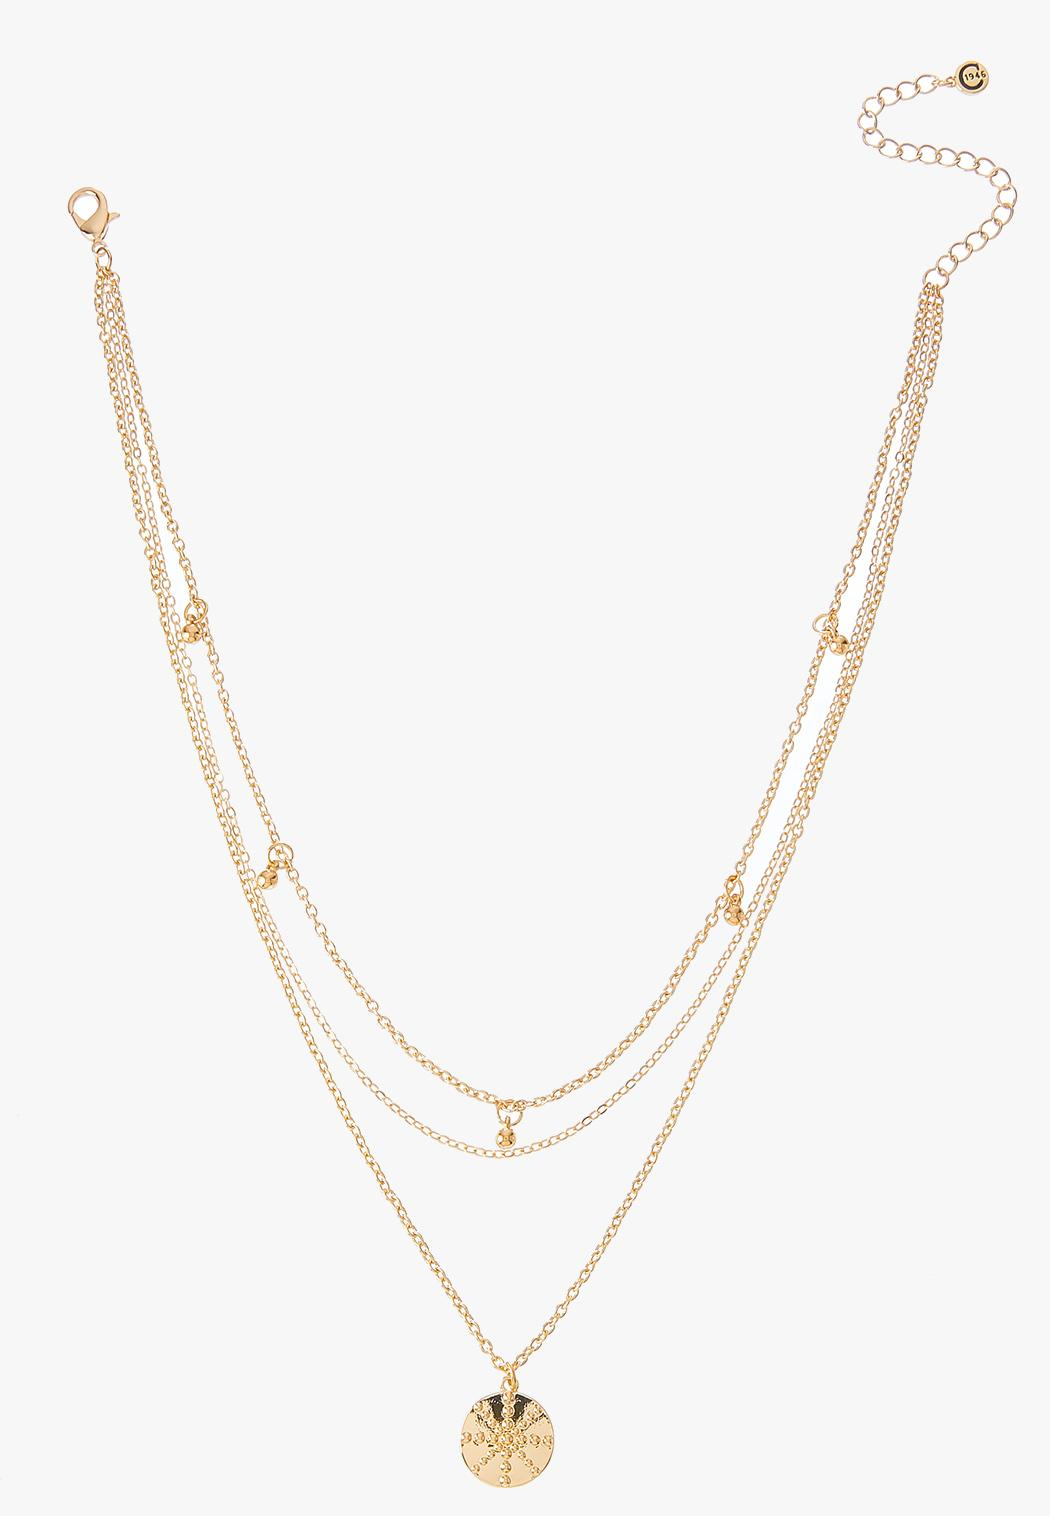 Layered Golden Snowflake Pendant Necklace